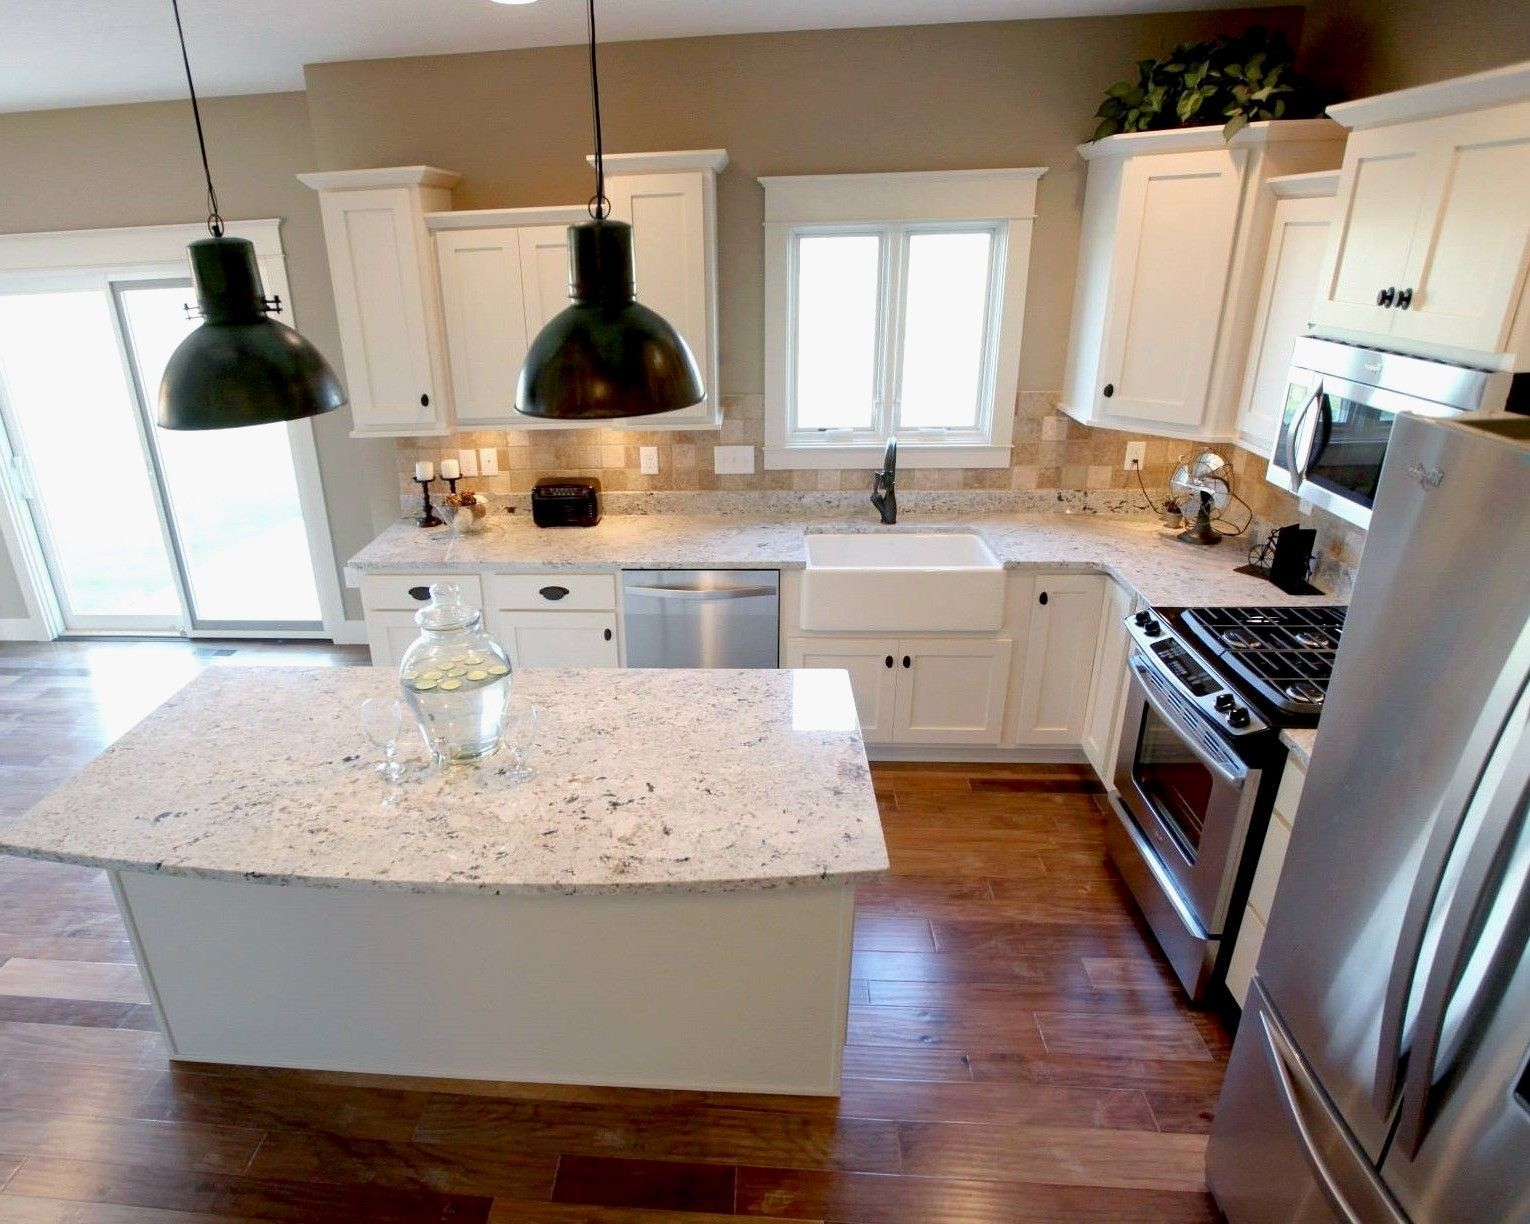 27 Fascinating Kitchen Layout Ideas A Guide For Kitchen Designs Withisland Floorplans Small B Small Kitchen Layouts Kitchen Layout Kitchen Designs Layout L shaped kitchen remodel ideas